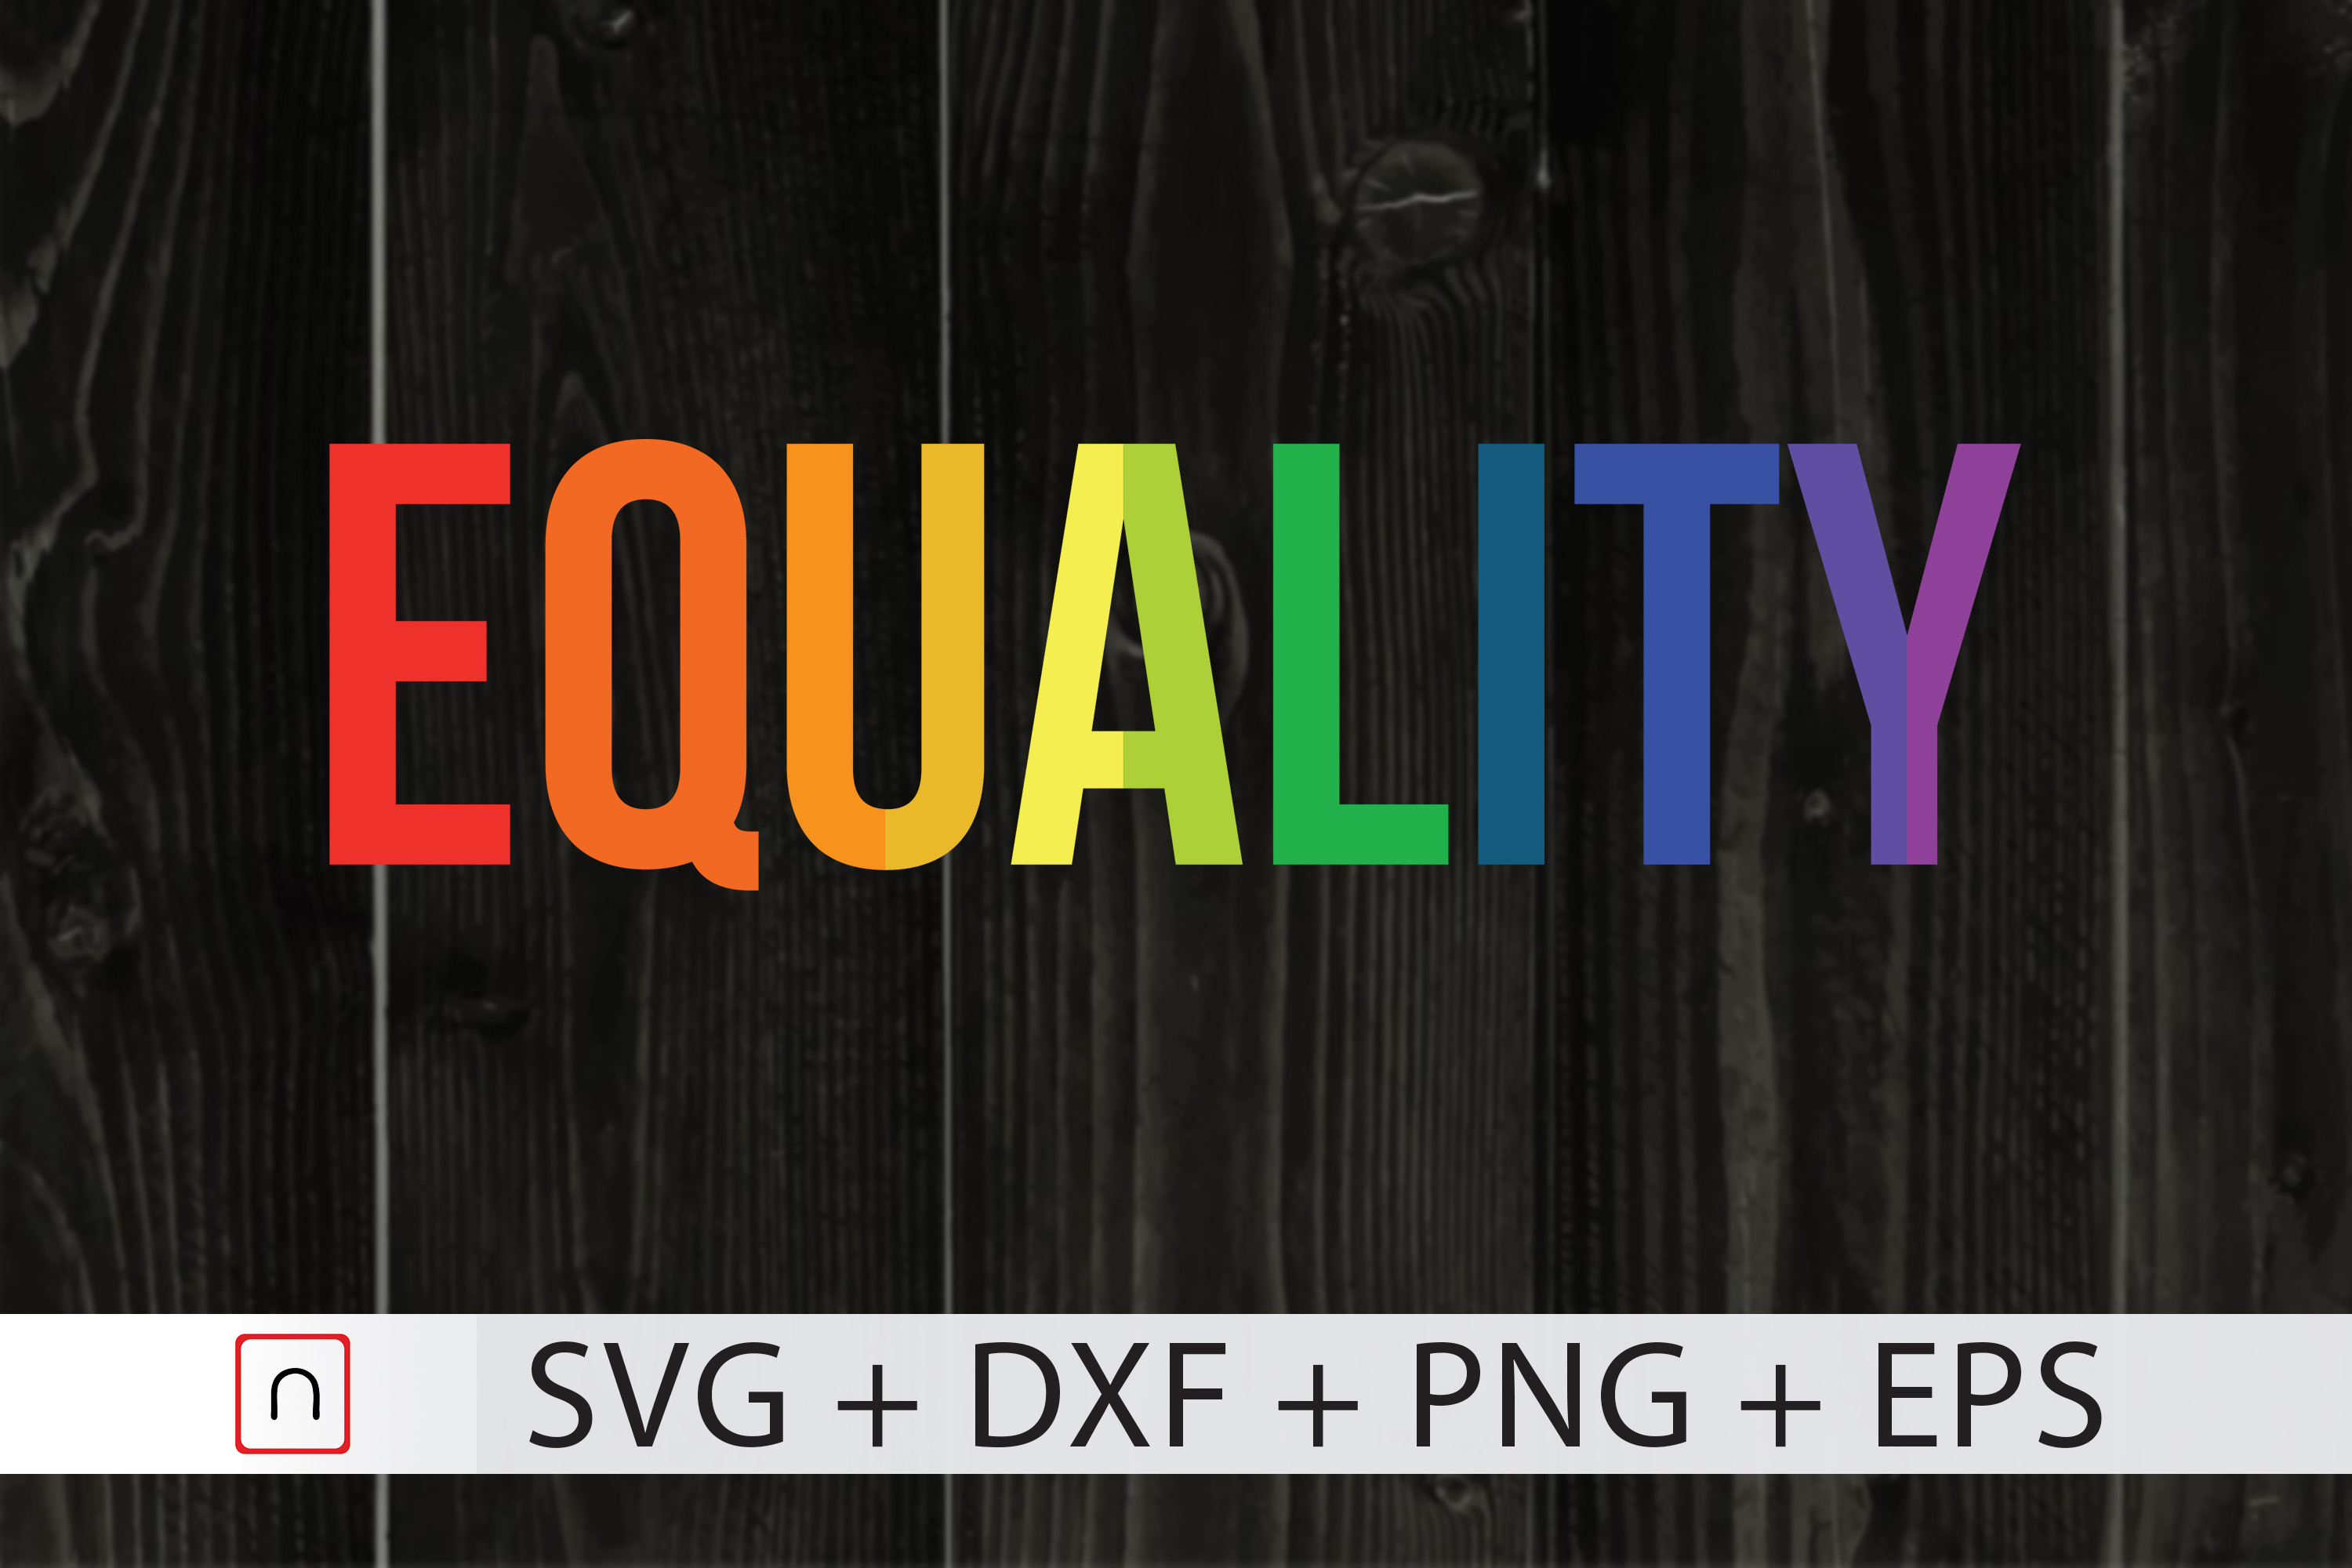 Download Free Equality Rainbow Flag Equality Lgbtq Graphic By Novalia for Cricut Explore, Silhouette and other cutting machines.